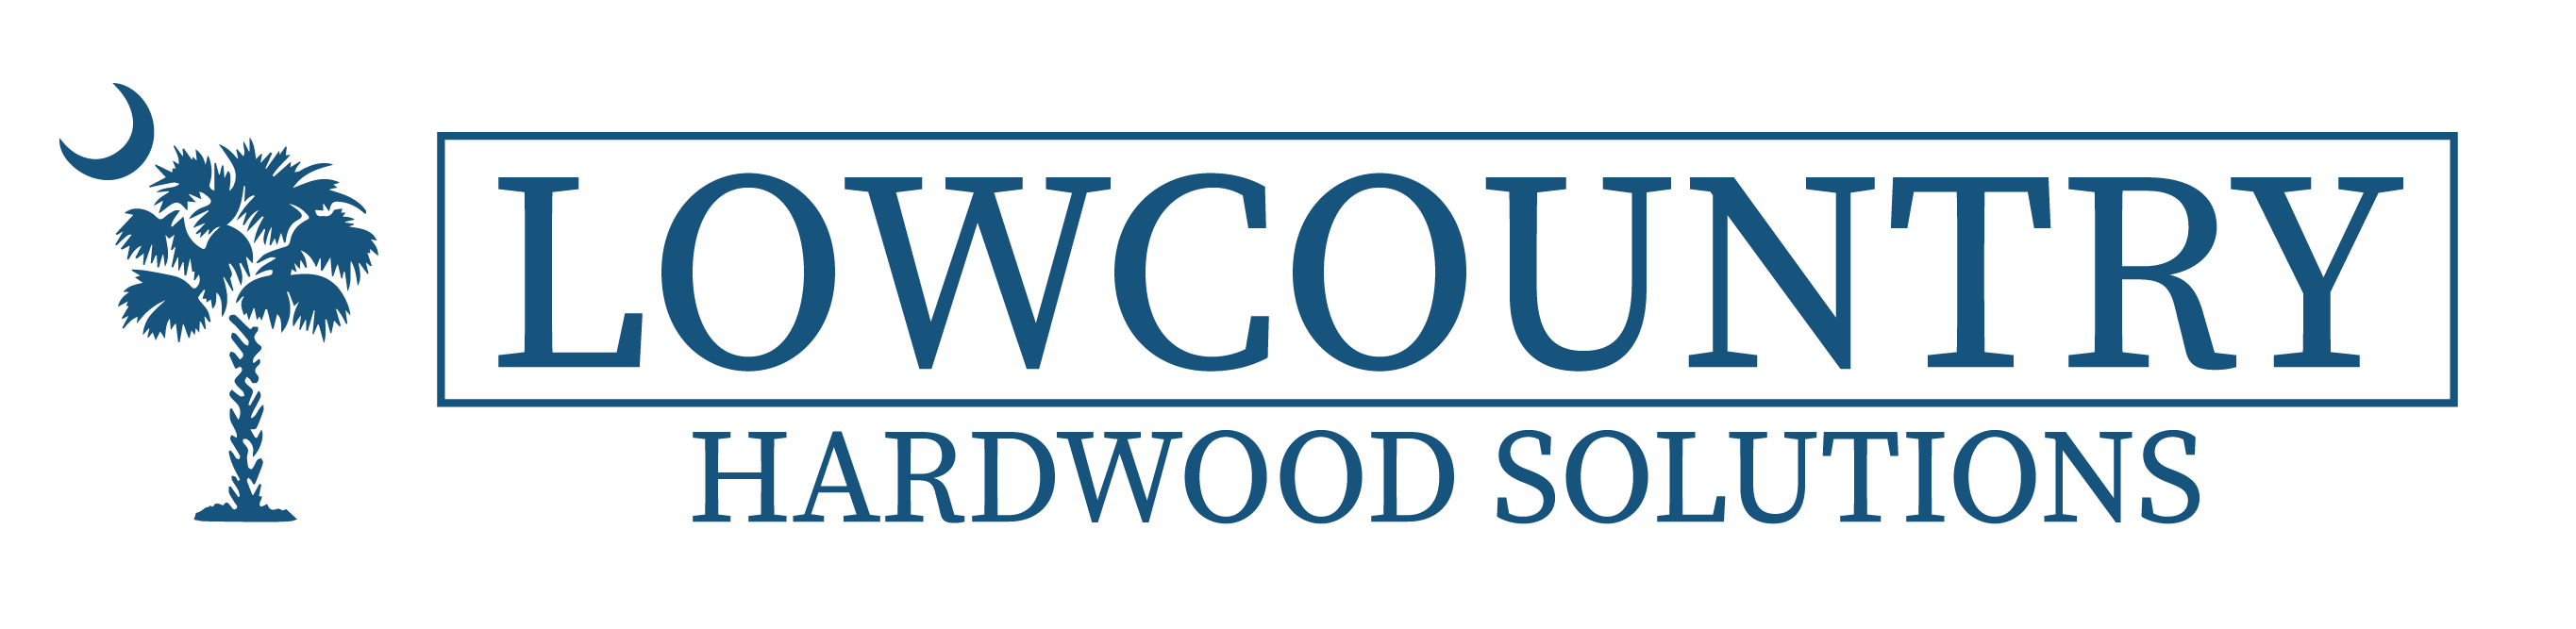 Lowcountry Hardwood Solutions logo Kite Media project